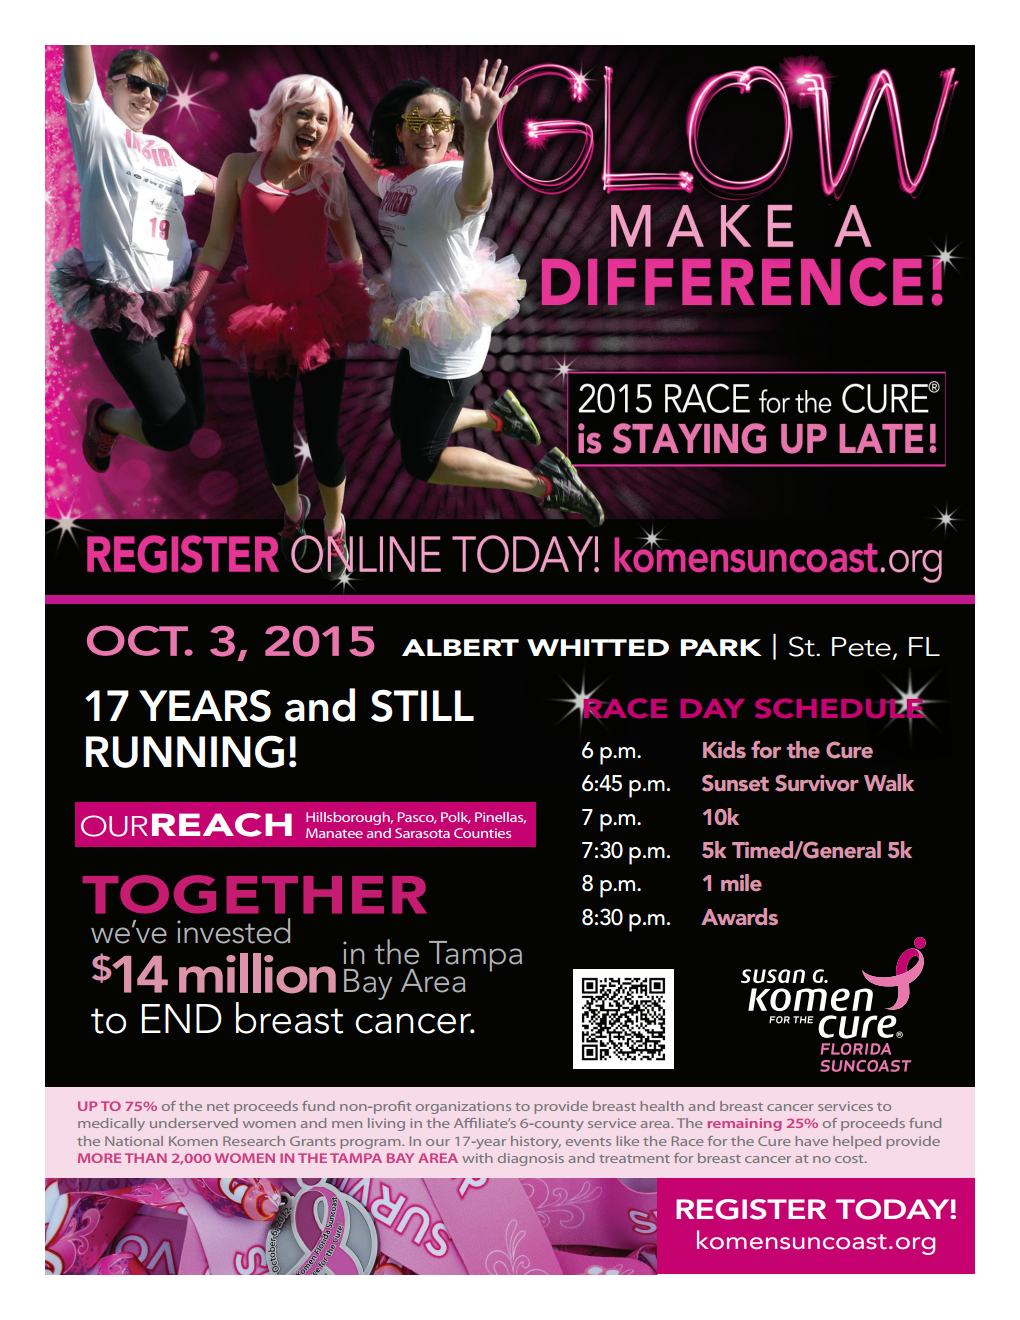 susan g komen florida suncoast race day schedule